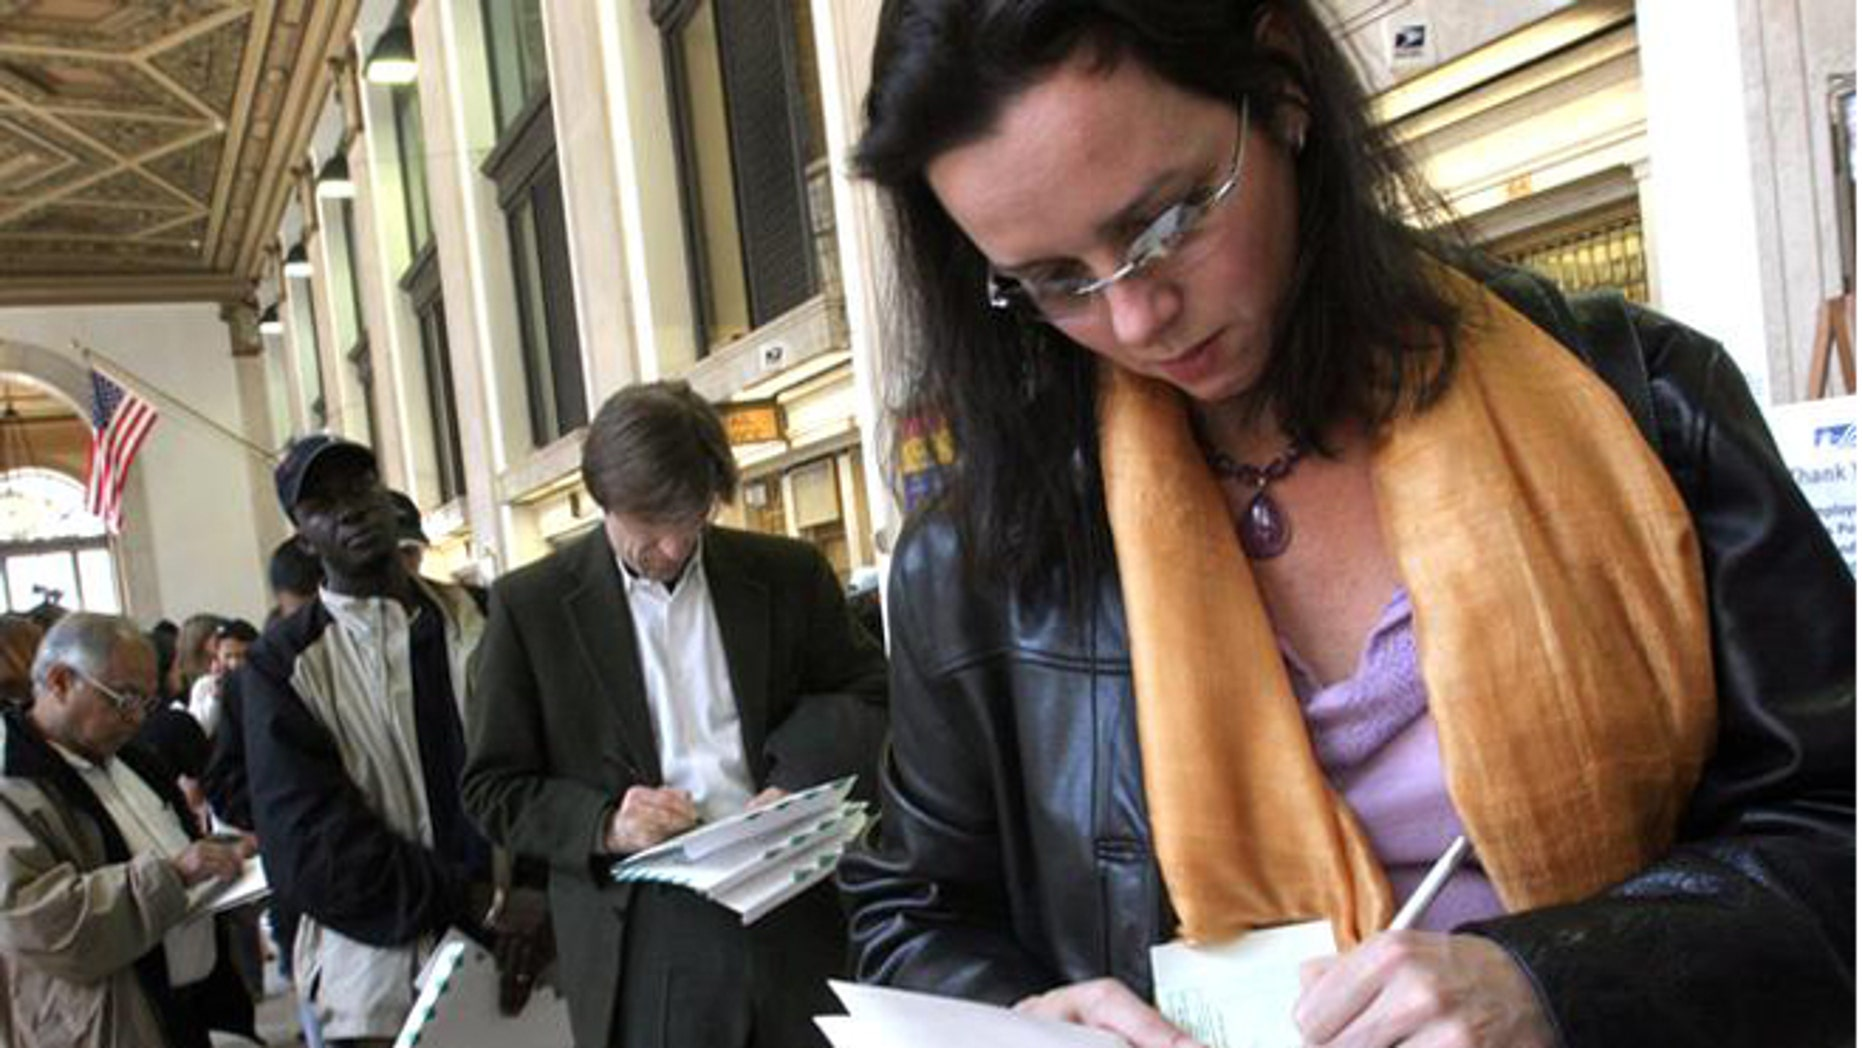 FILE: April 15, 2005: Tax filers fill out a form for certified mail at the General Post Office in New York before sending in her tax returns.